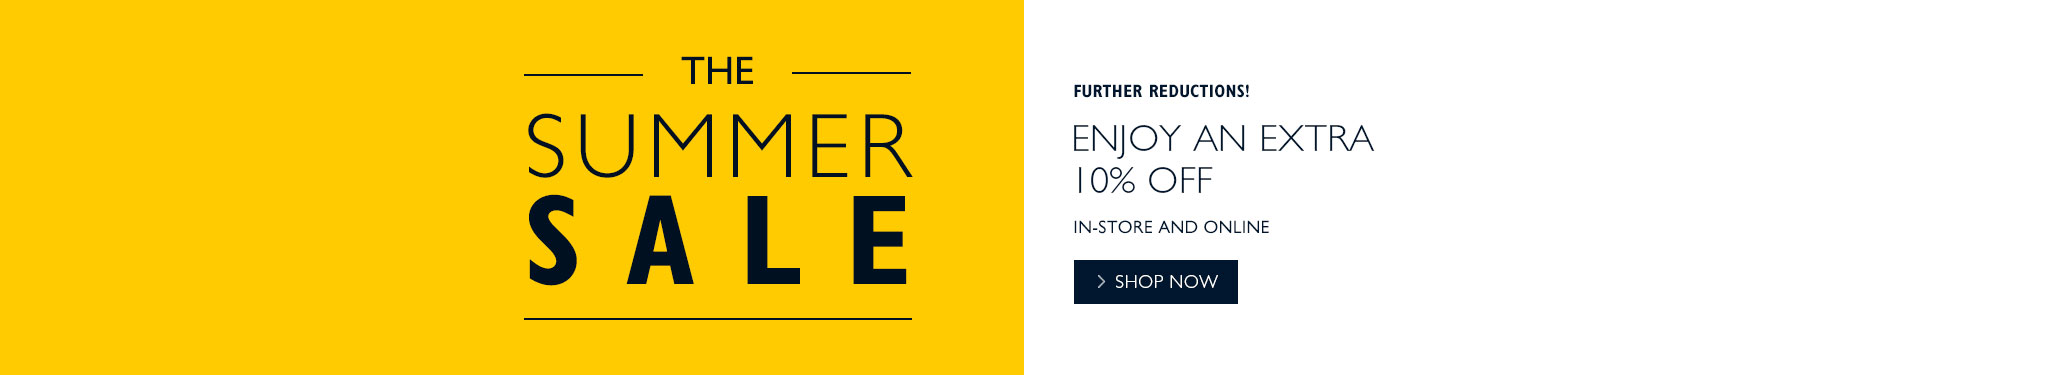 L'Occitane Further Reductions